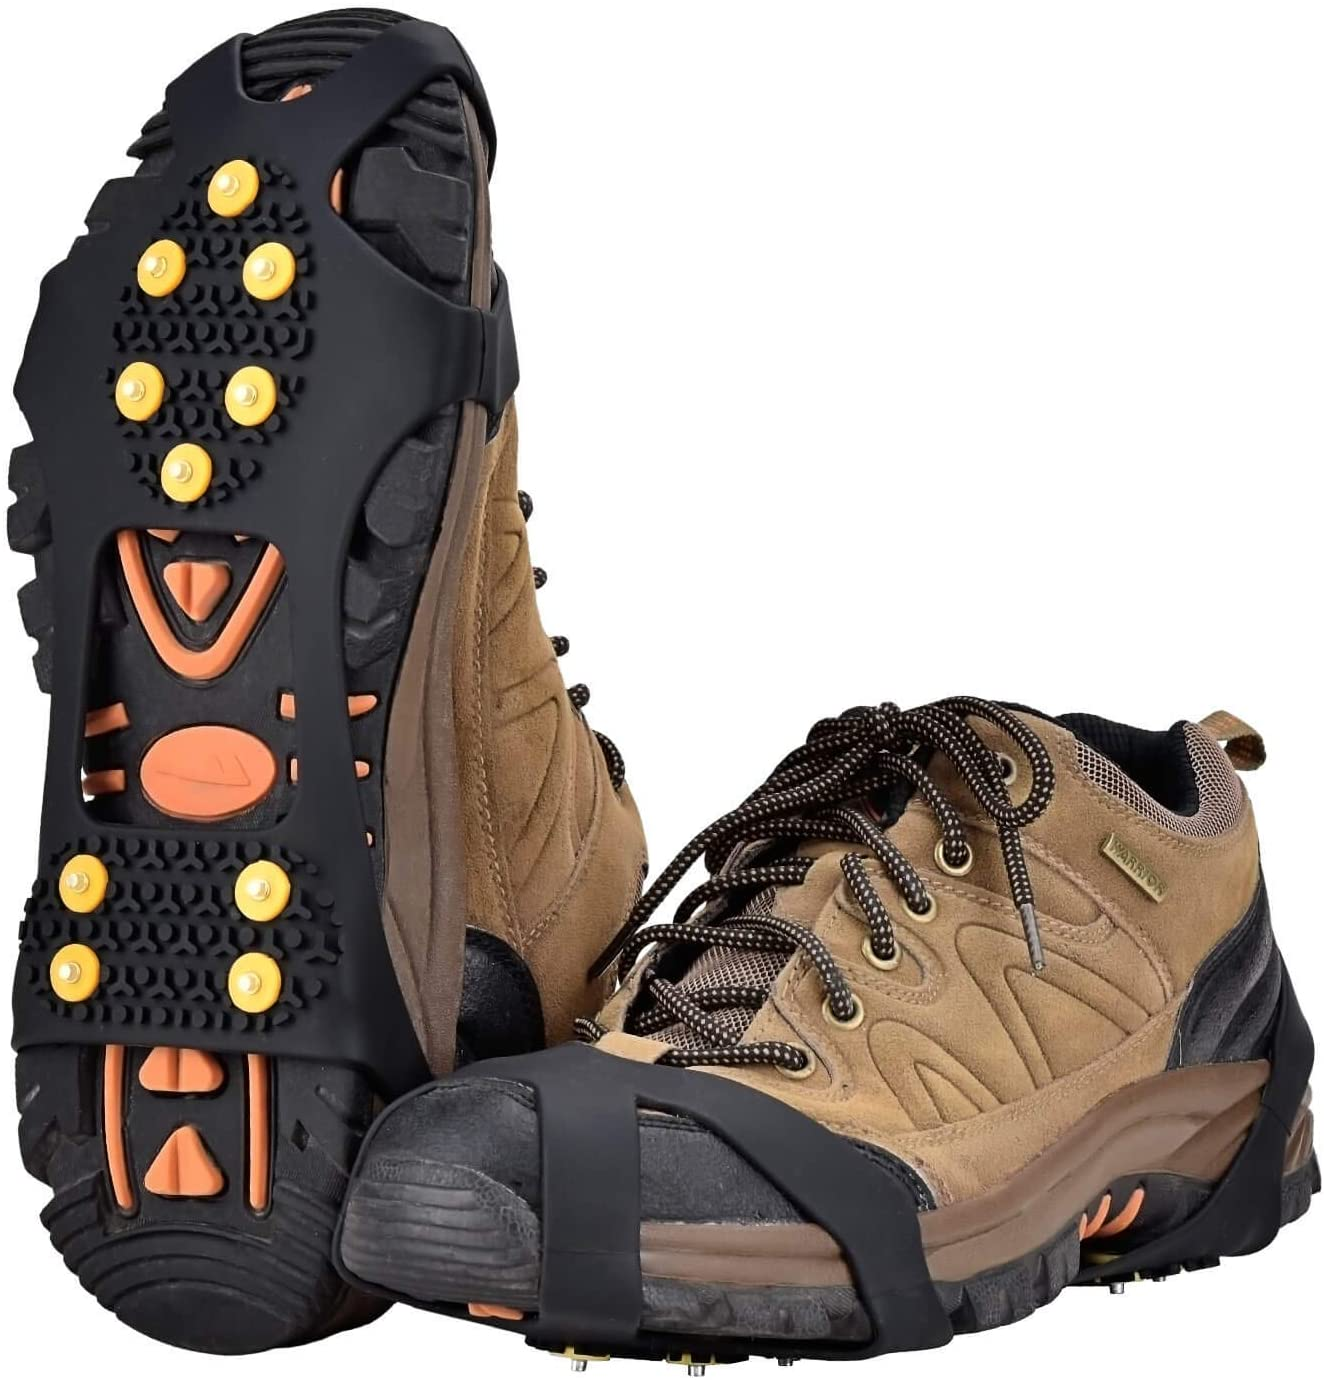 No More Falling 1 Pair Snow Ice Shoe Grip Grippers Active